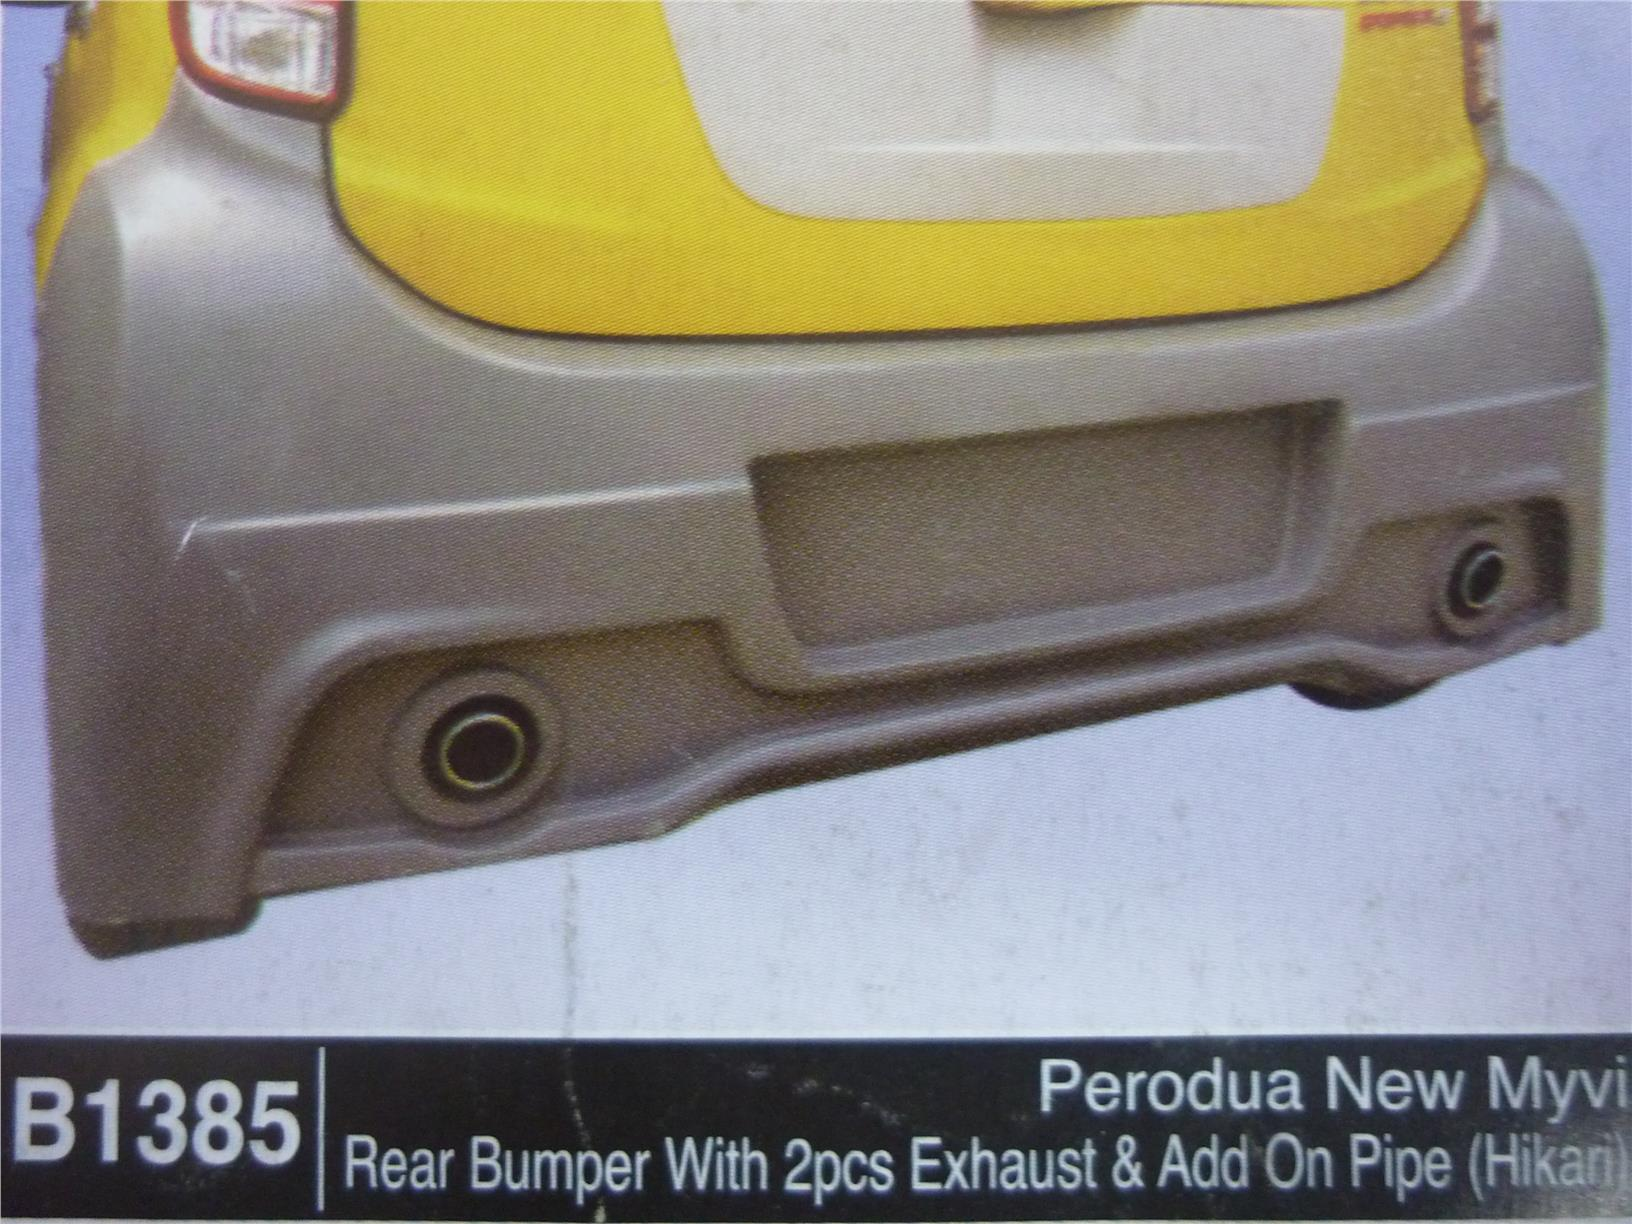 PERODUA NEW MYVI REAR BUMPER WITH 2PCS EXHAUST AND ADD ON PIPE B1385